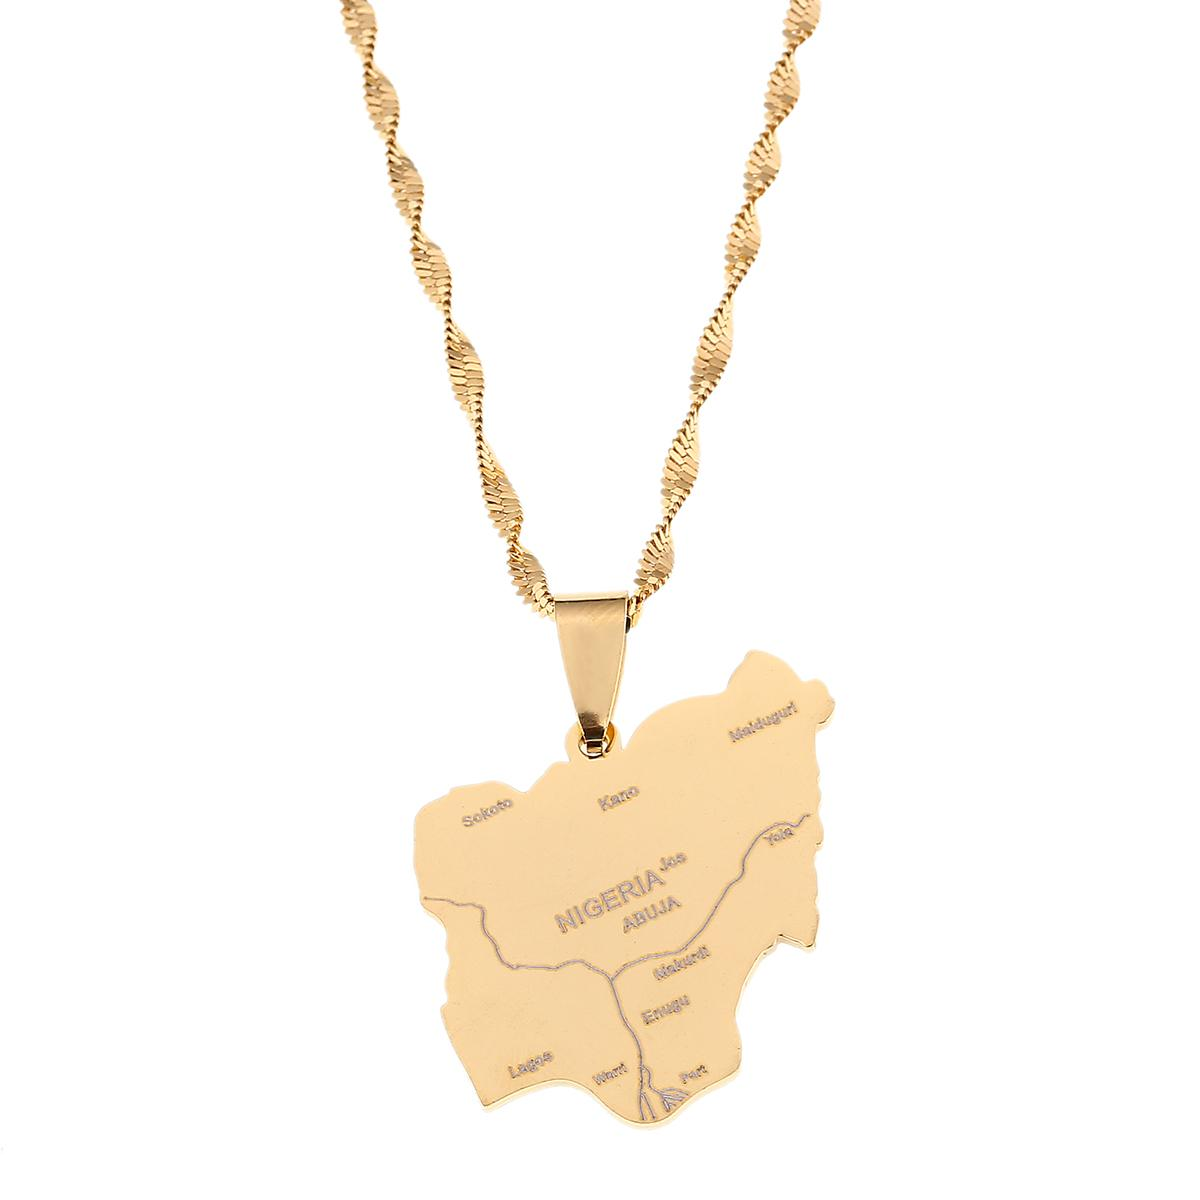 Stainless Steel Gold Nigeria Map Pendant Necklaces Country Maps Africa Nigerians Maps Jewelry